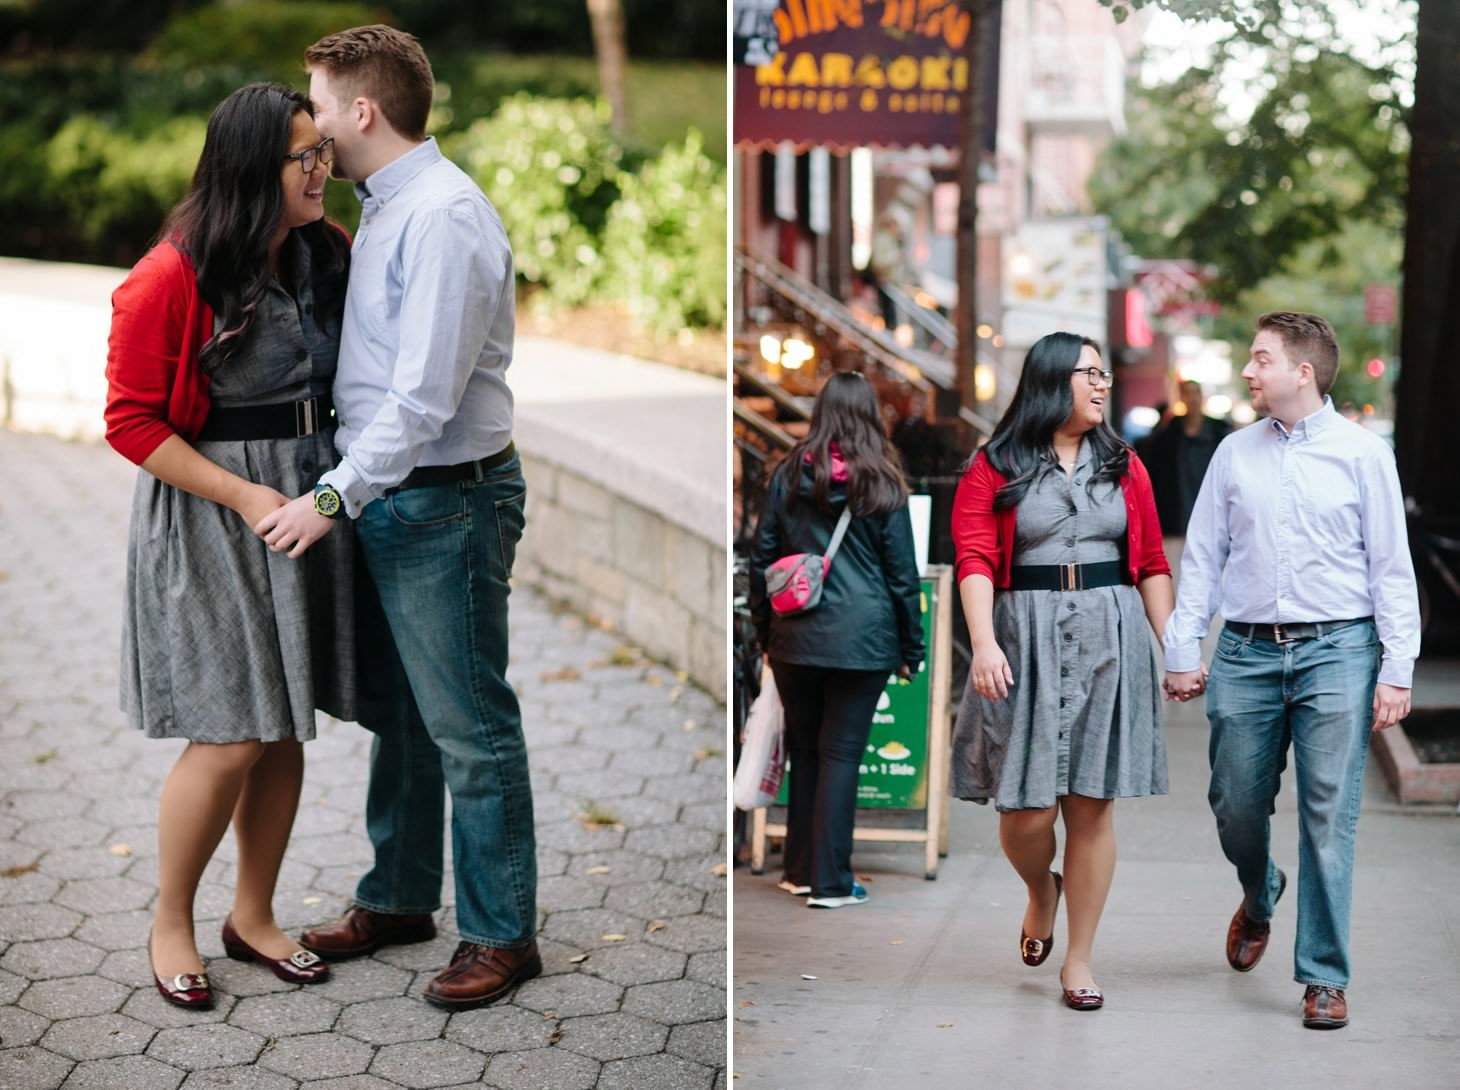 002-nyc-wedding-portrait-photographer-engagement-photos-nerdy-east-village-smitten-chickens.jpg